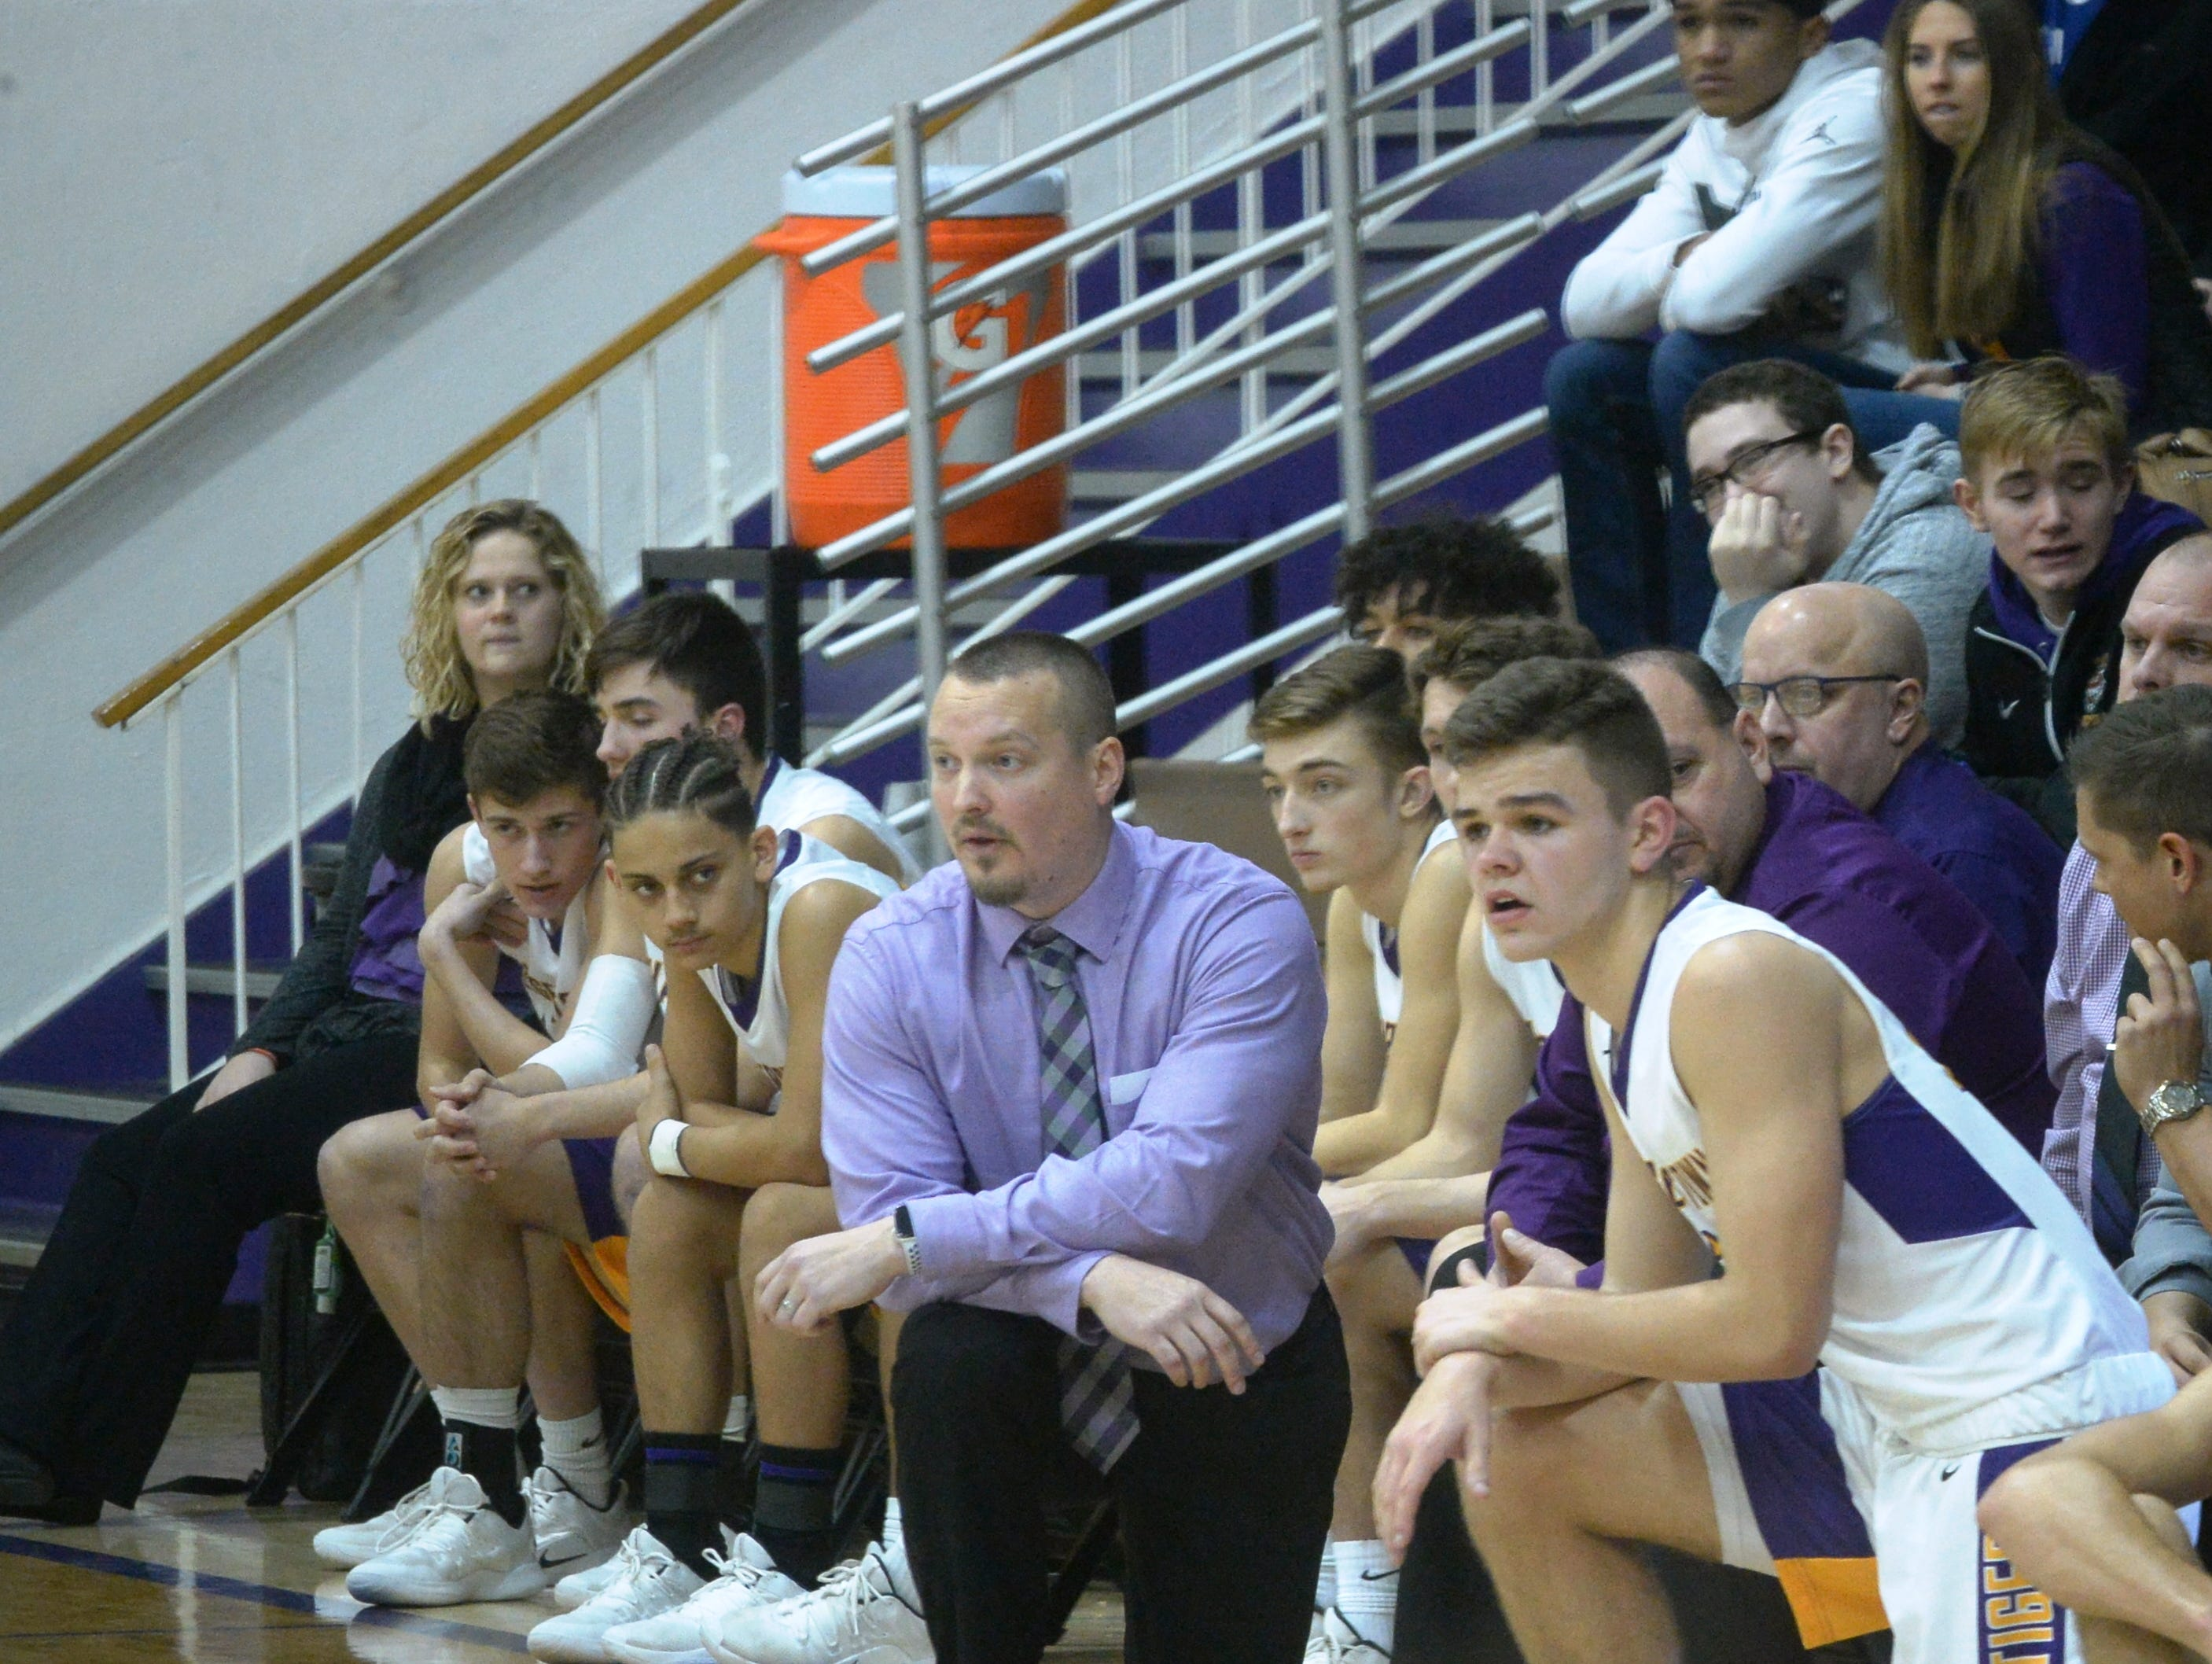 Hagerstown boys basketball coach Chad Romack during the Wayne County boys basketball championship at Hagerstown Saturday, Jan. 5, 2019. Hagerstown defeated Northeastern 37-35 to win the girls' title, and Northeastern beat Hagerstown 60-49 in the boys championship.